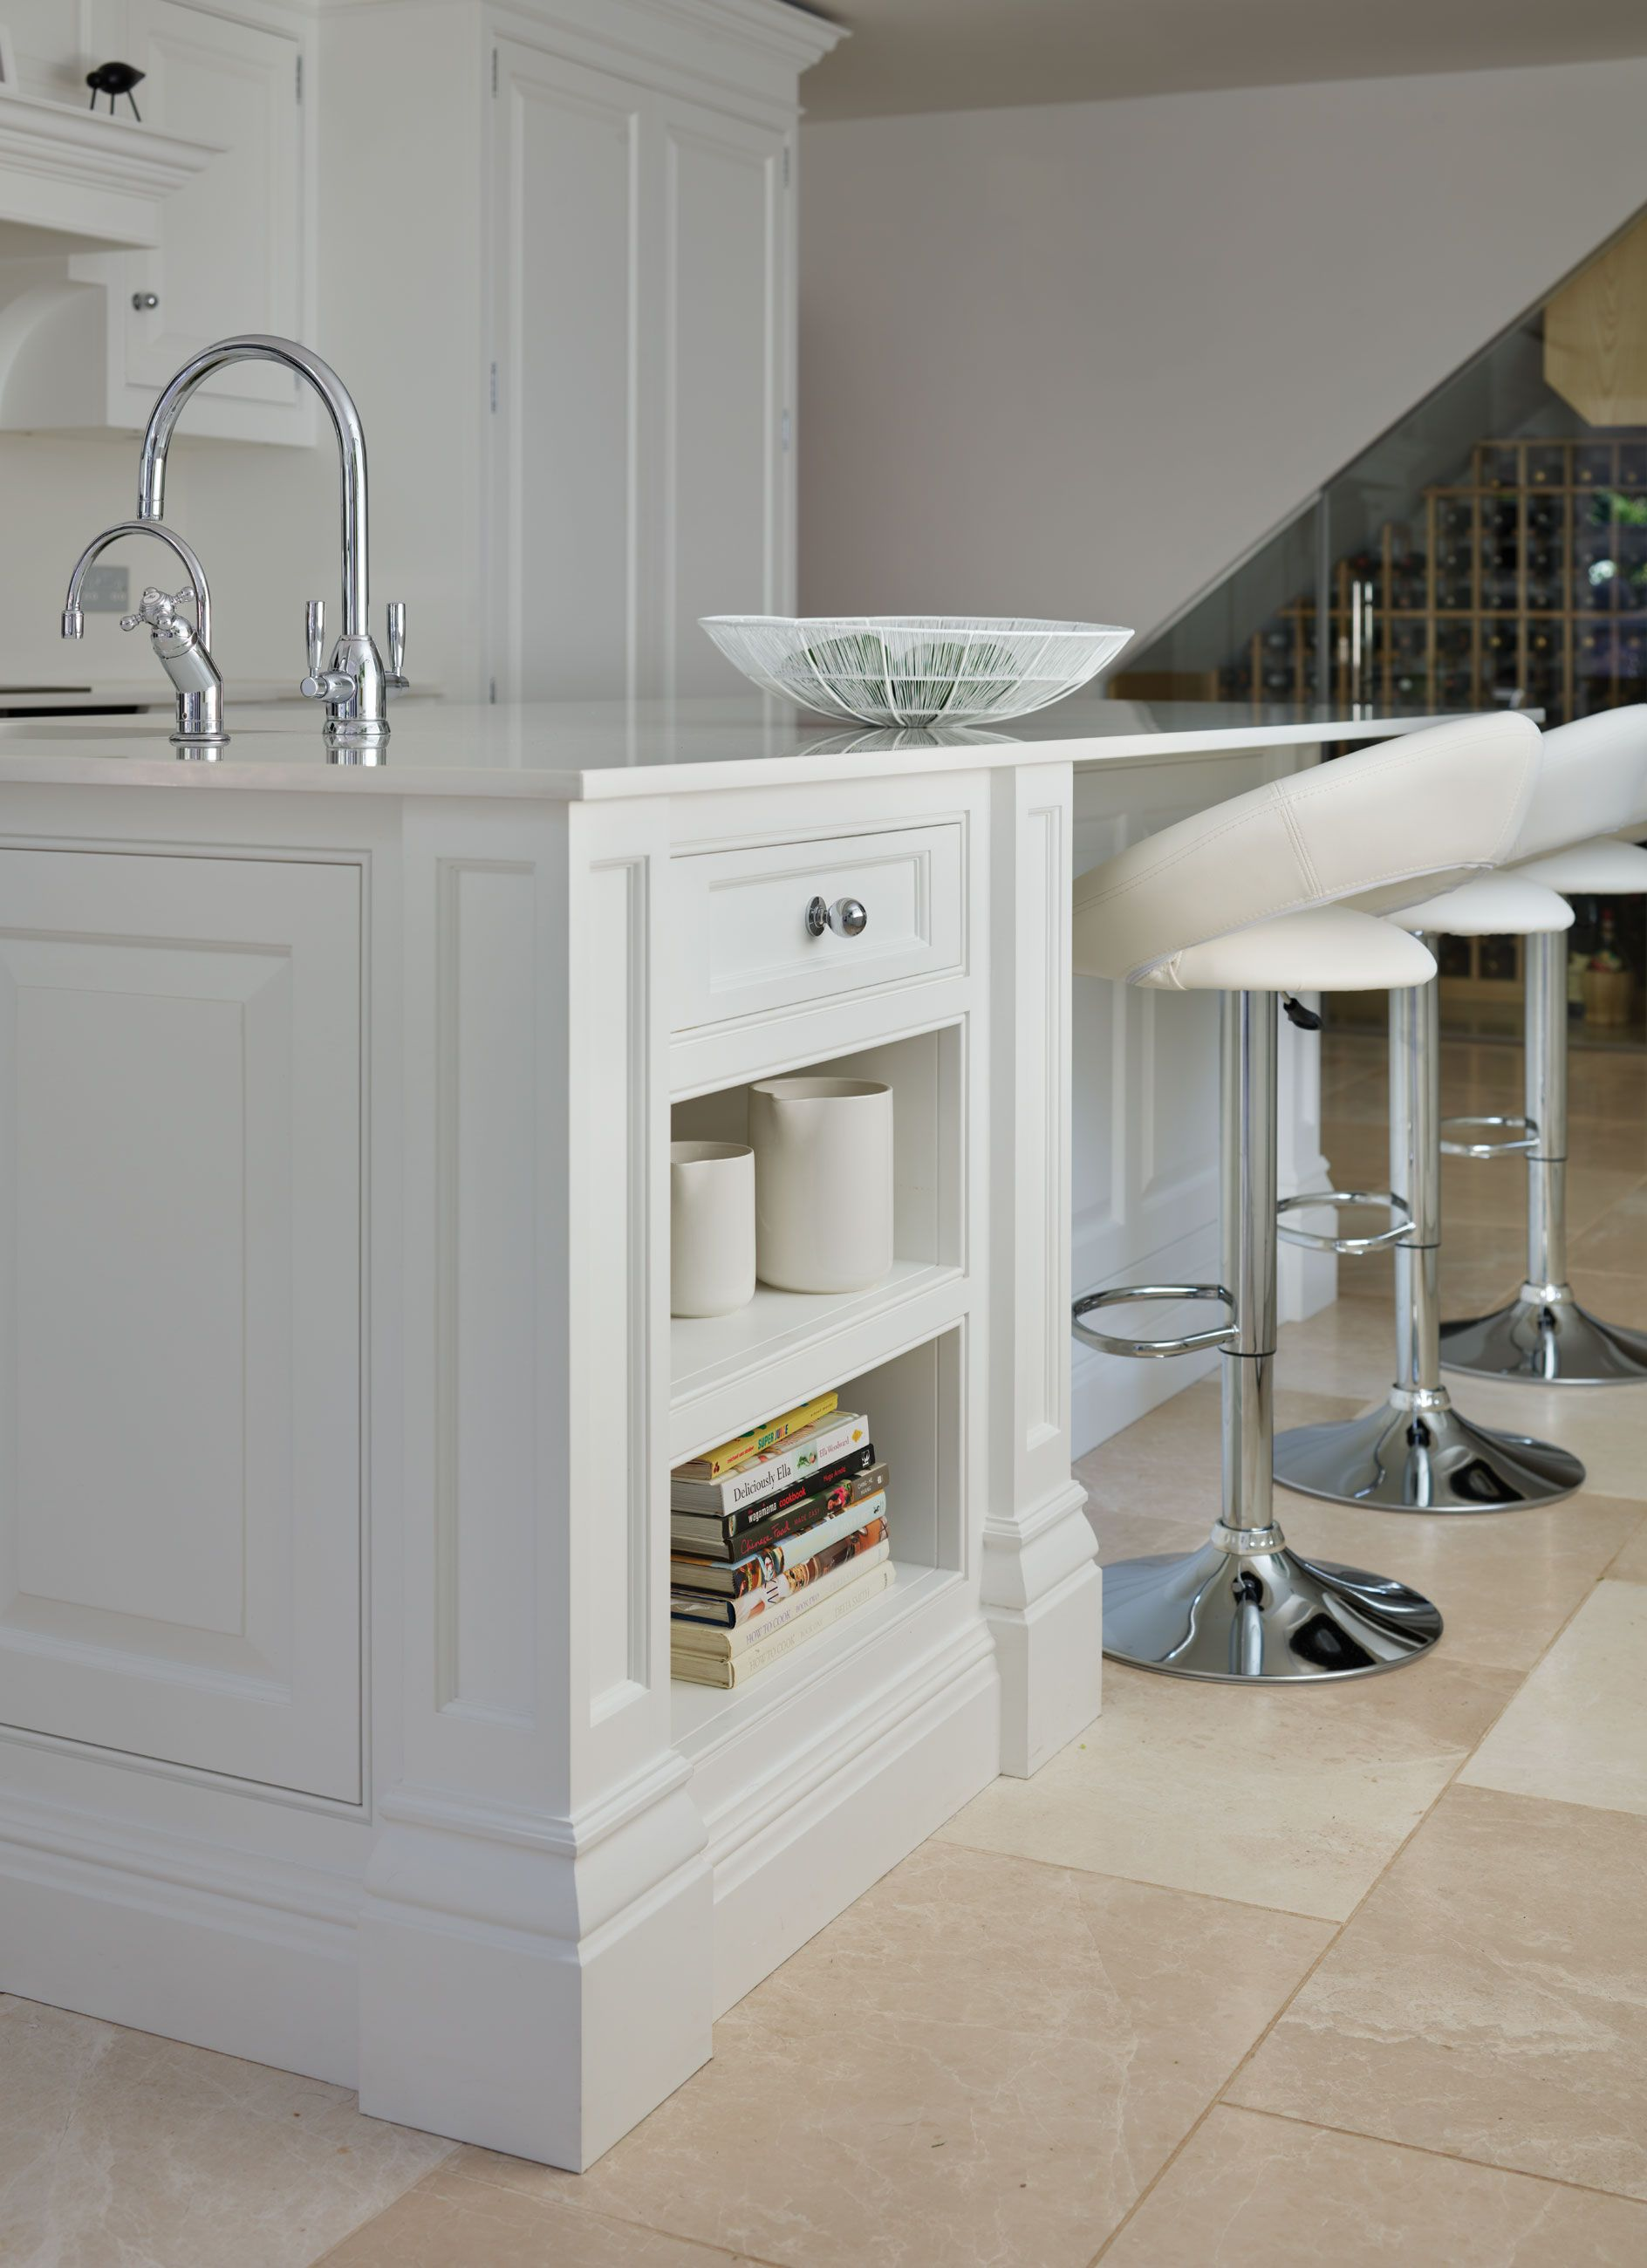 Our latest dream family kitchen from the devine collection in